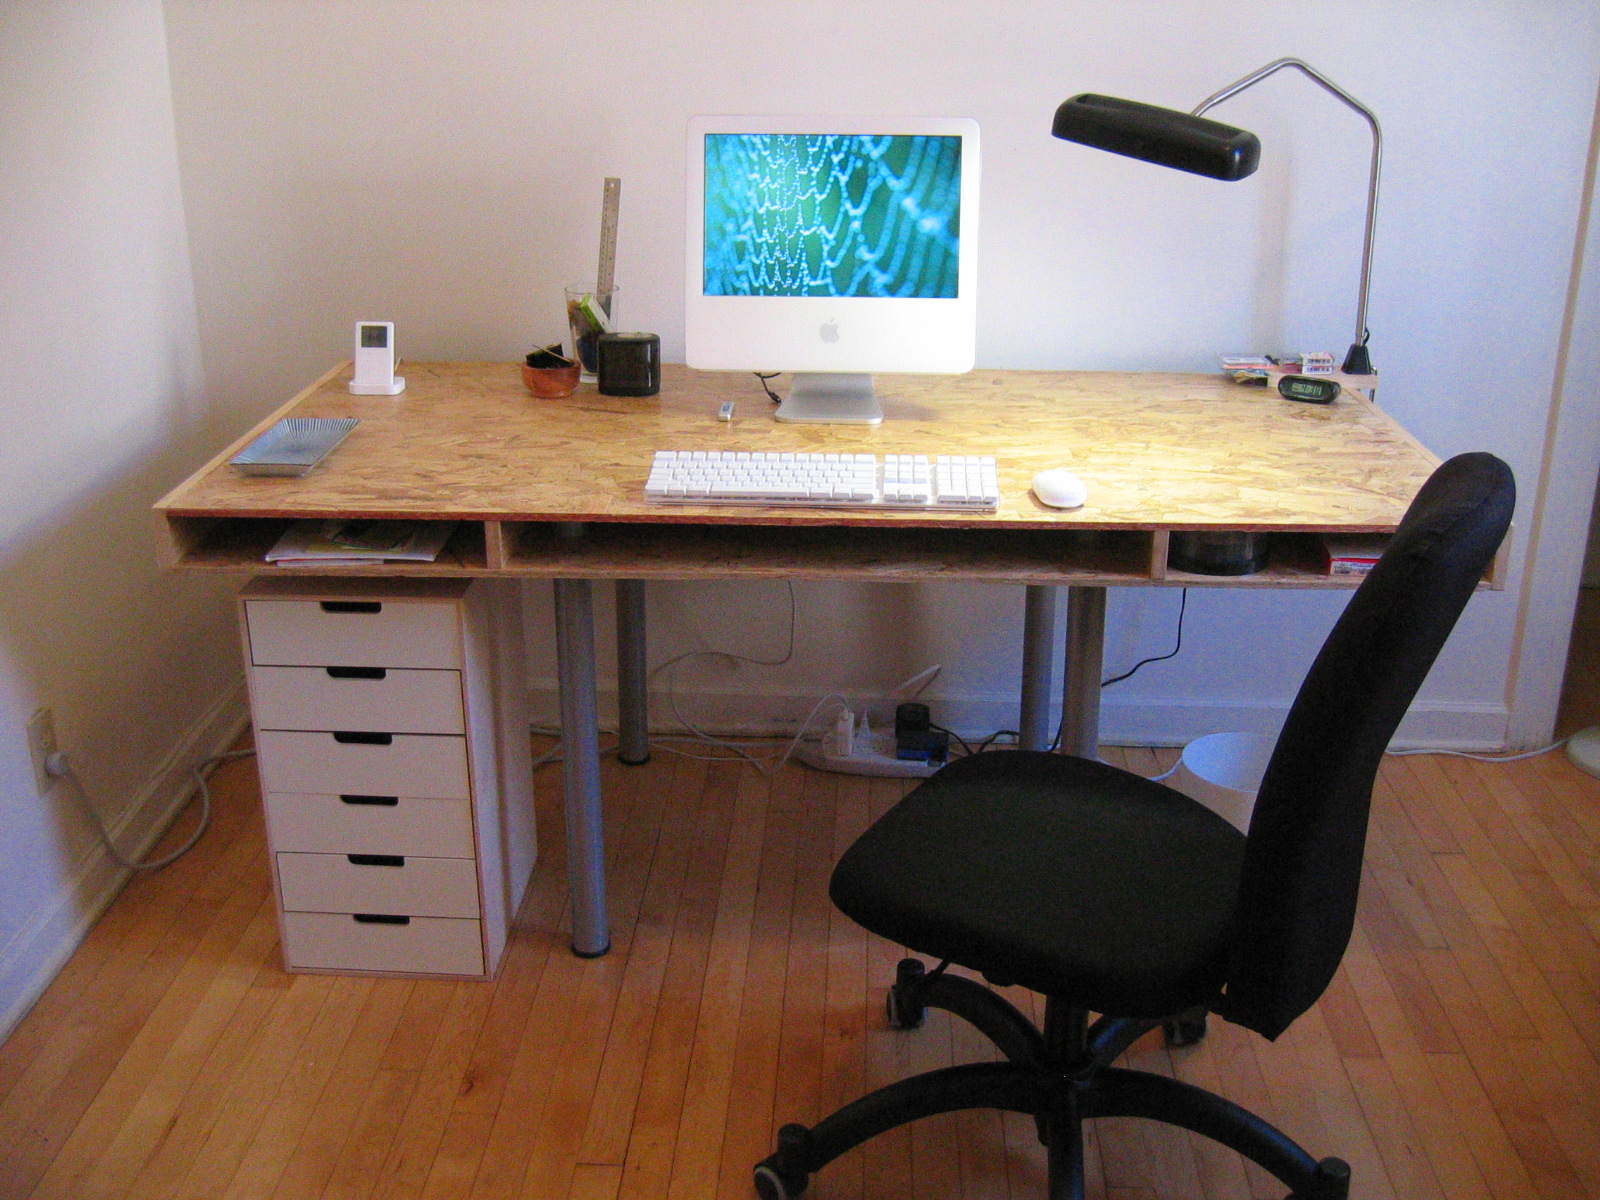 File:Desk.jpg - Wikimedia Commons